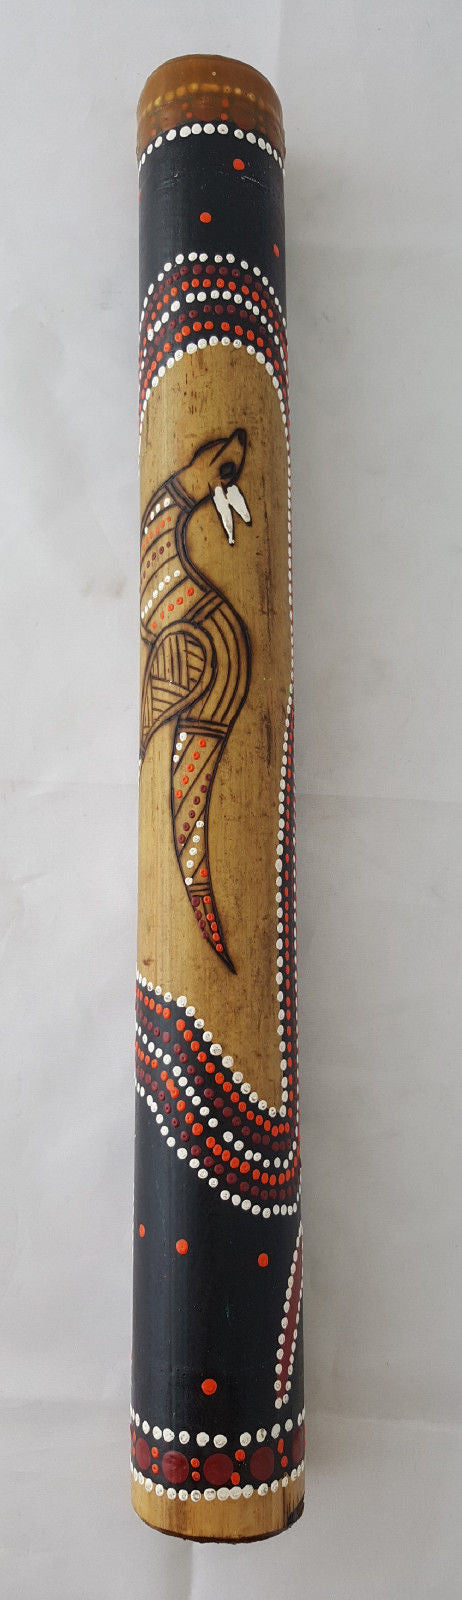 DIDGERIDOO BURNT BAMBOO 40CM ABORIGINAL BEAUTIFULLY HAND PAINTED NEW BRN